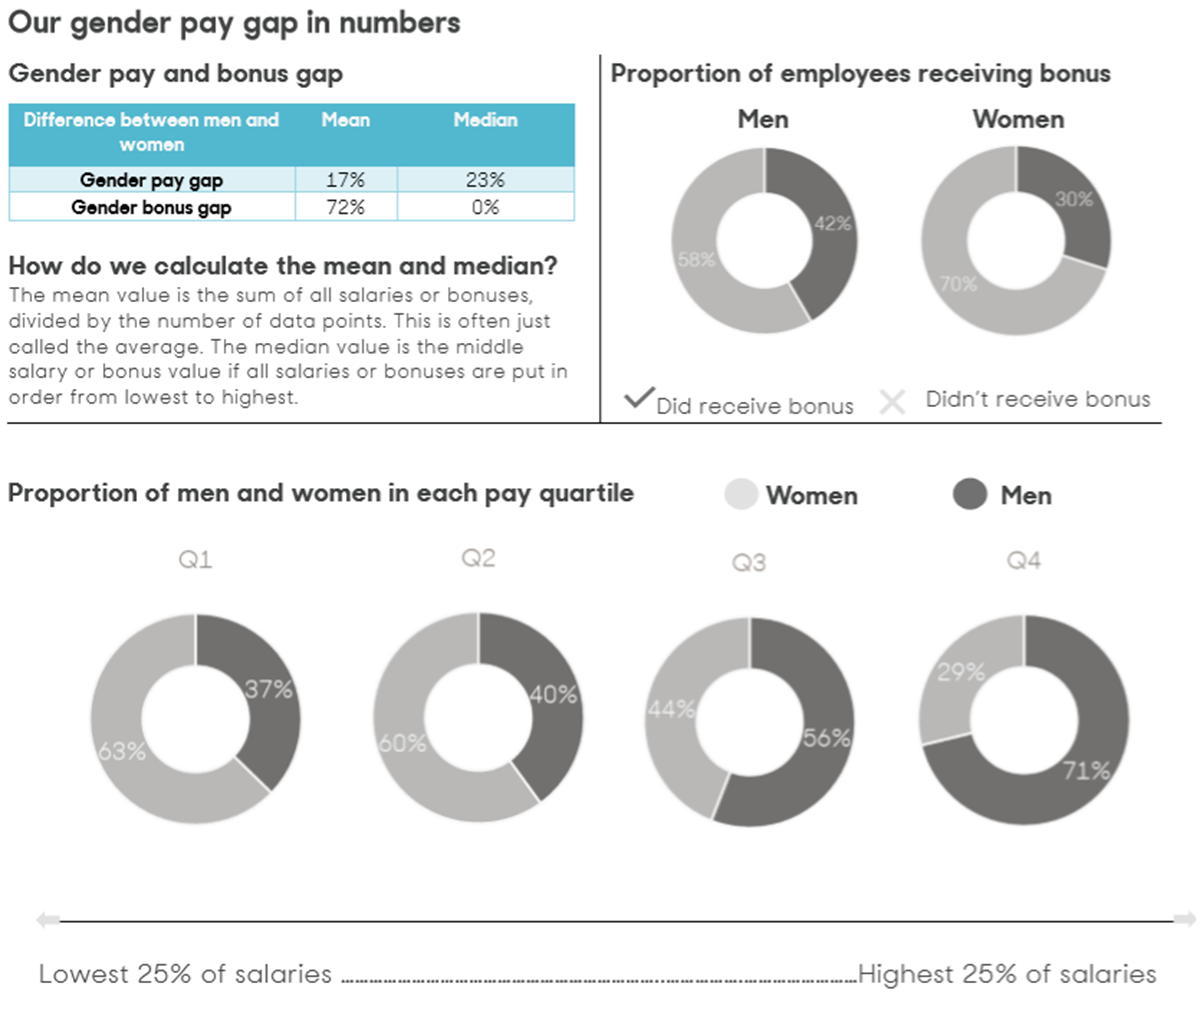 Our gender pay gap in numbers